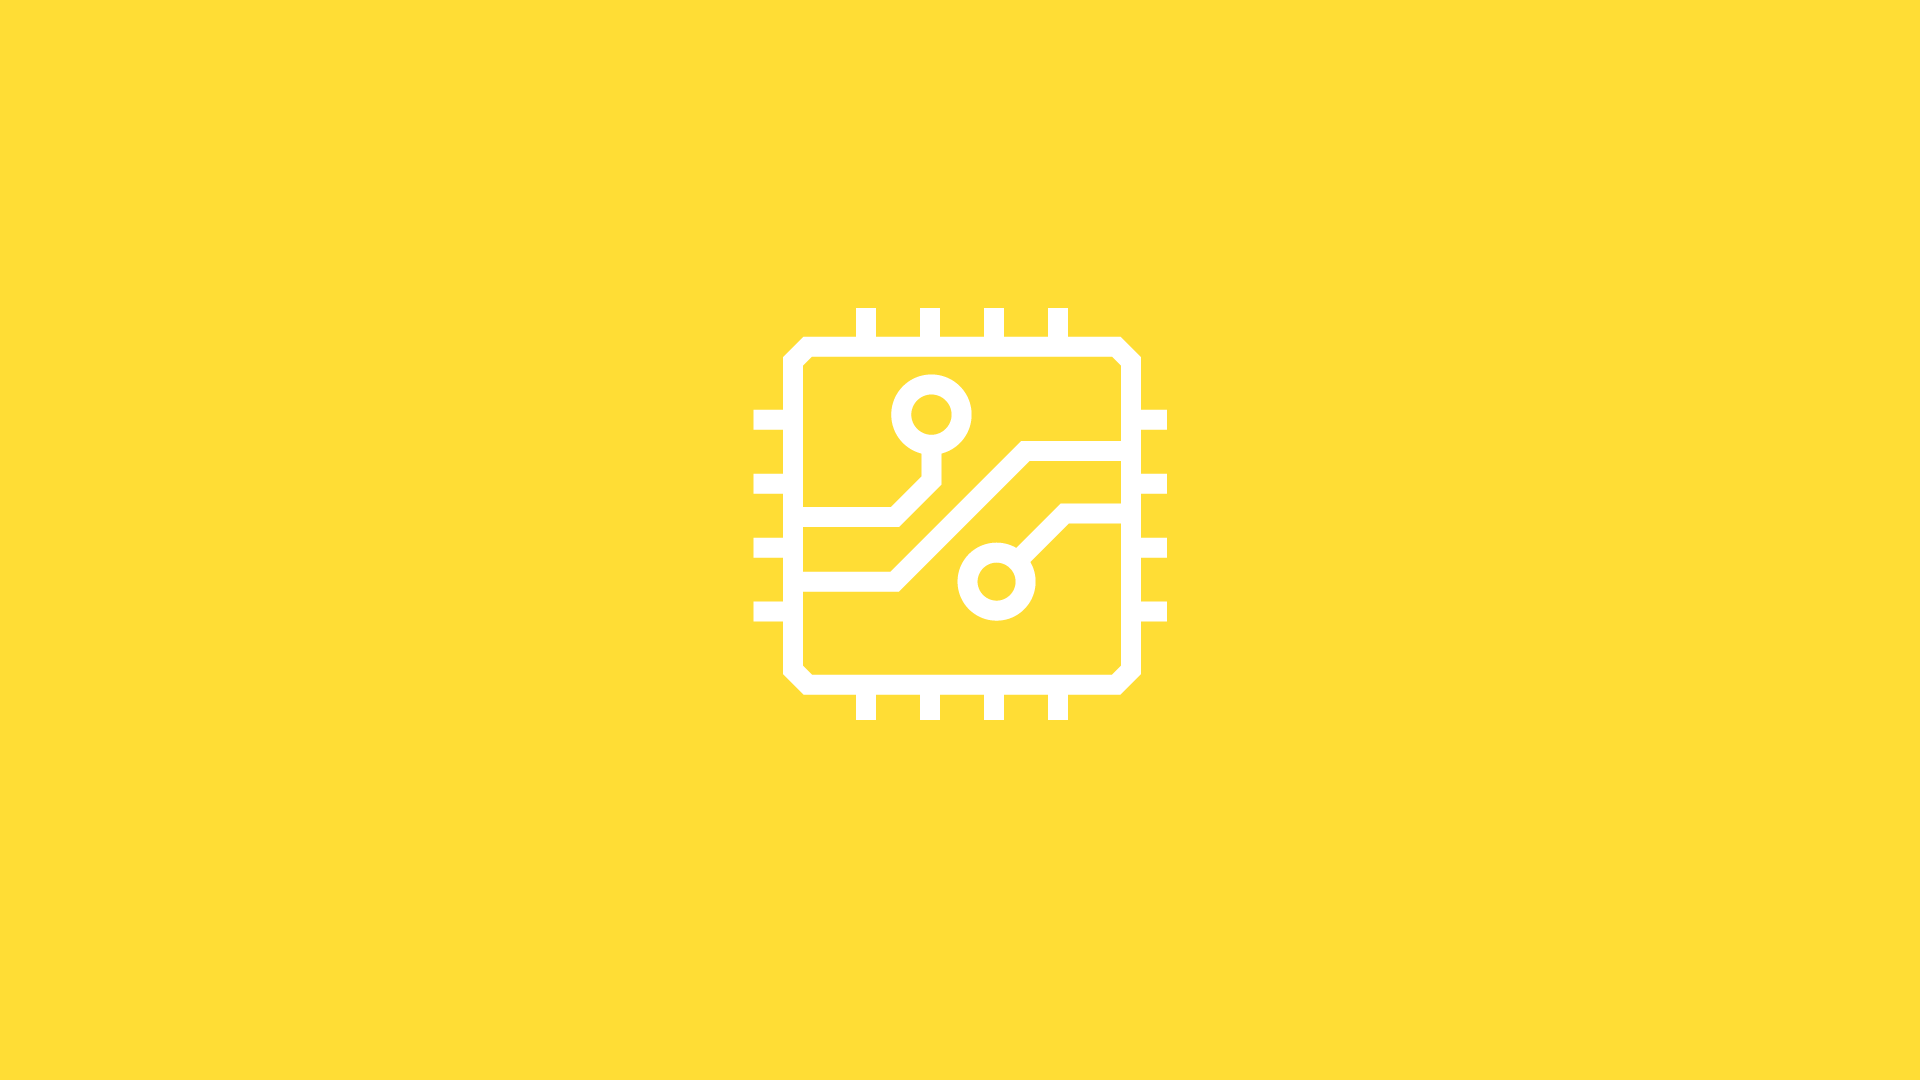 white hardware chip icon on yellow background